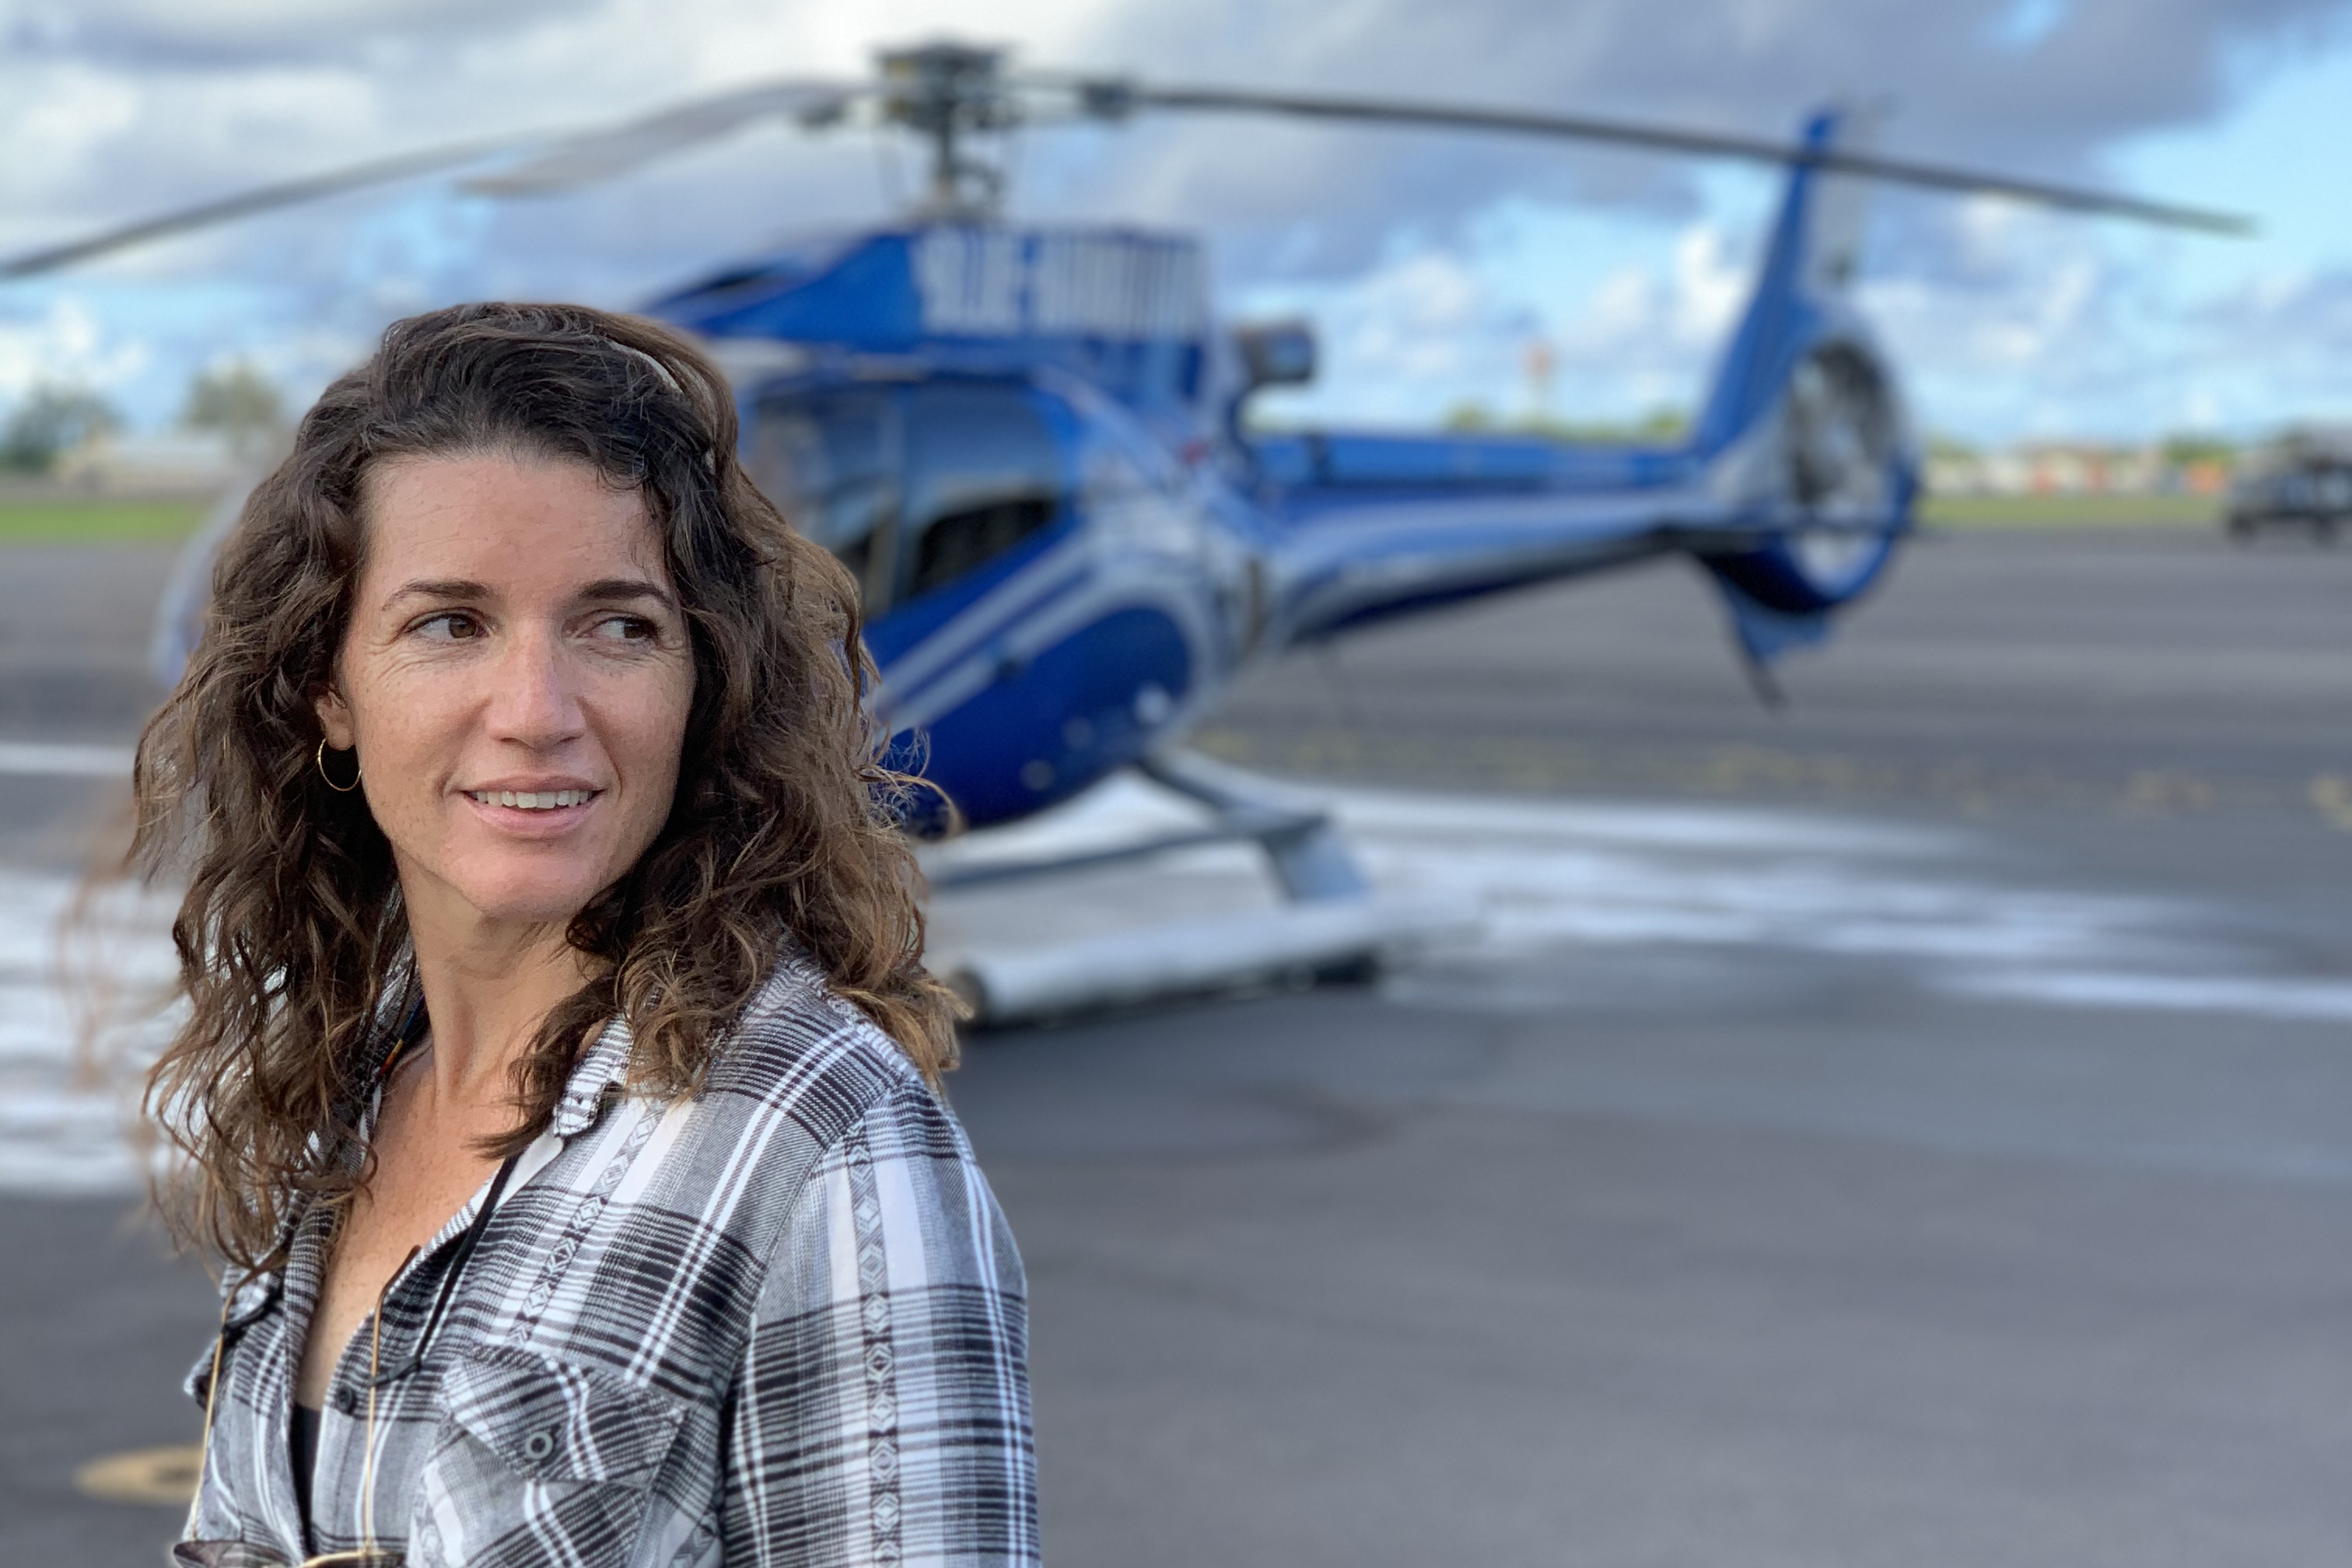 Sarah Snell standing in front of a chopper